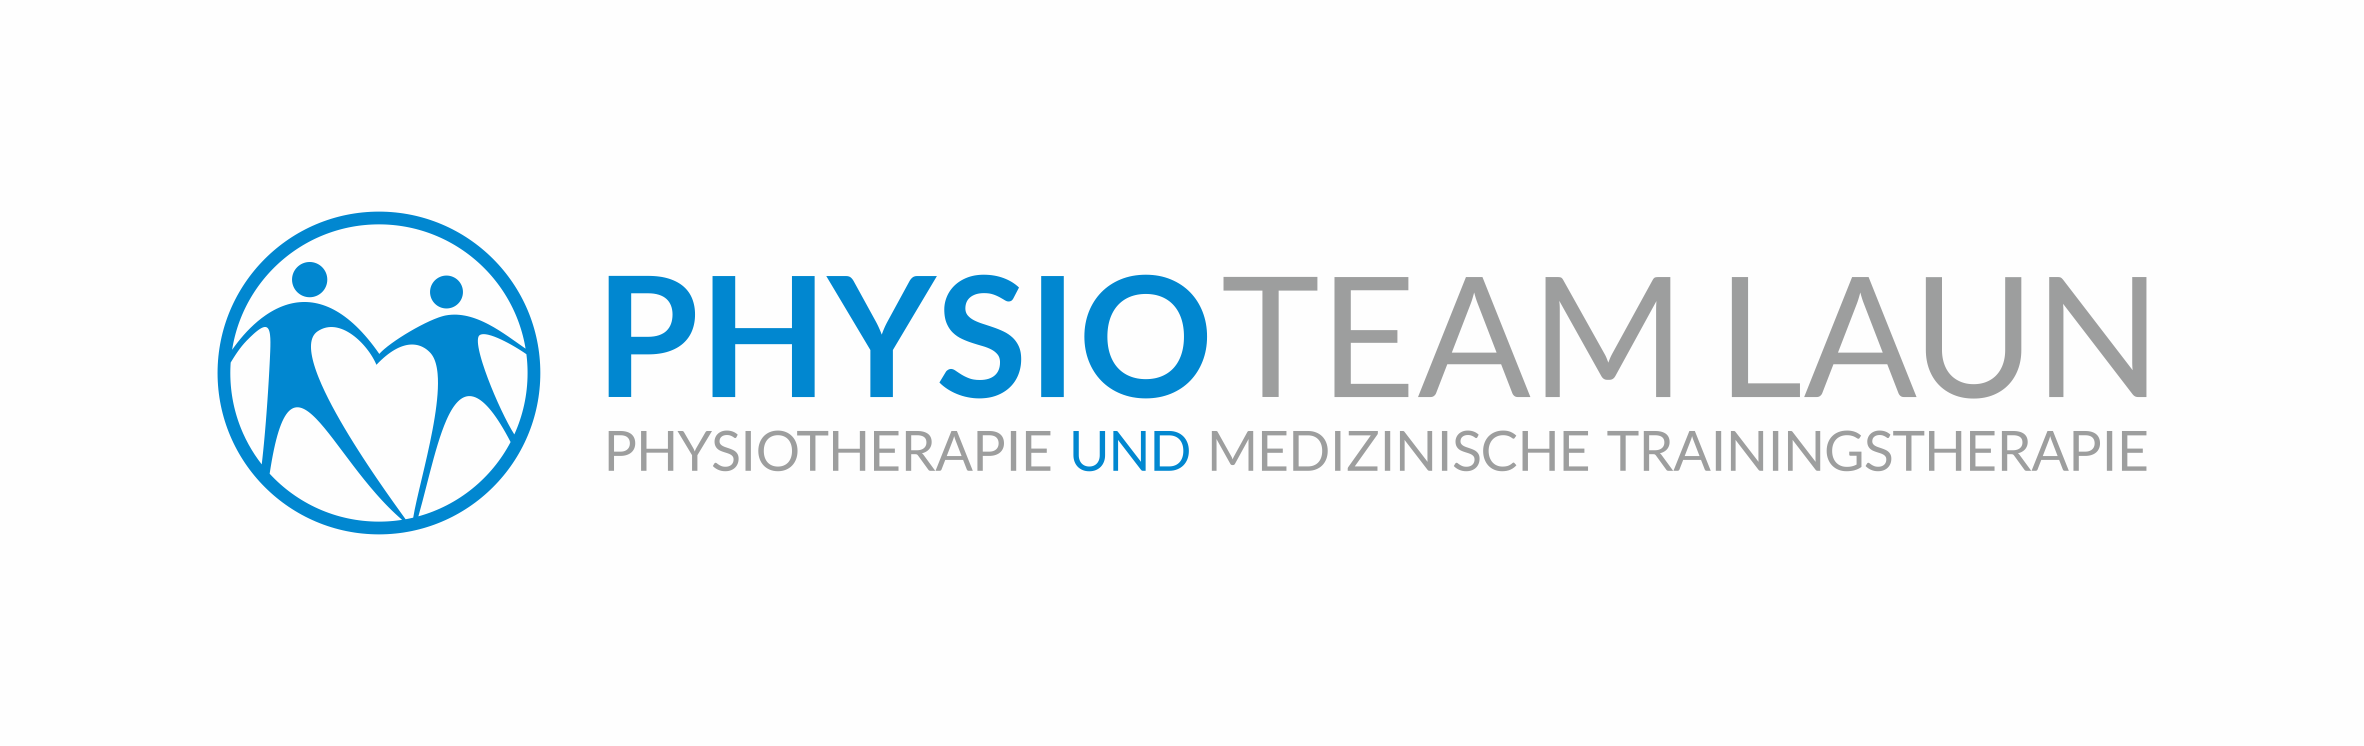 Physio Team Laun